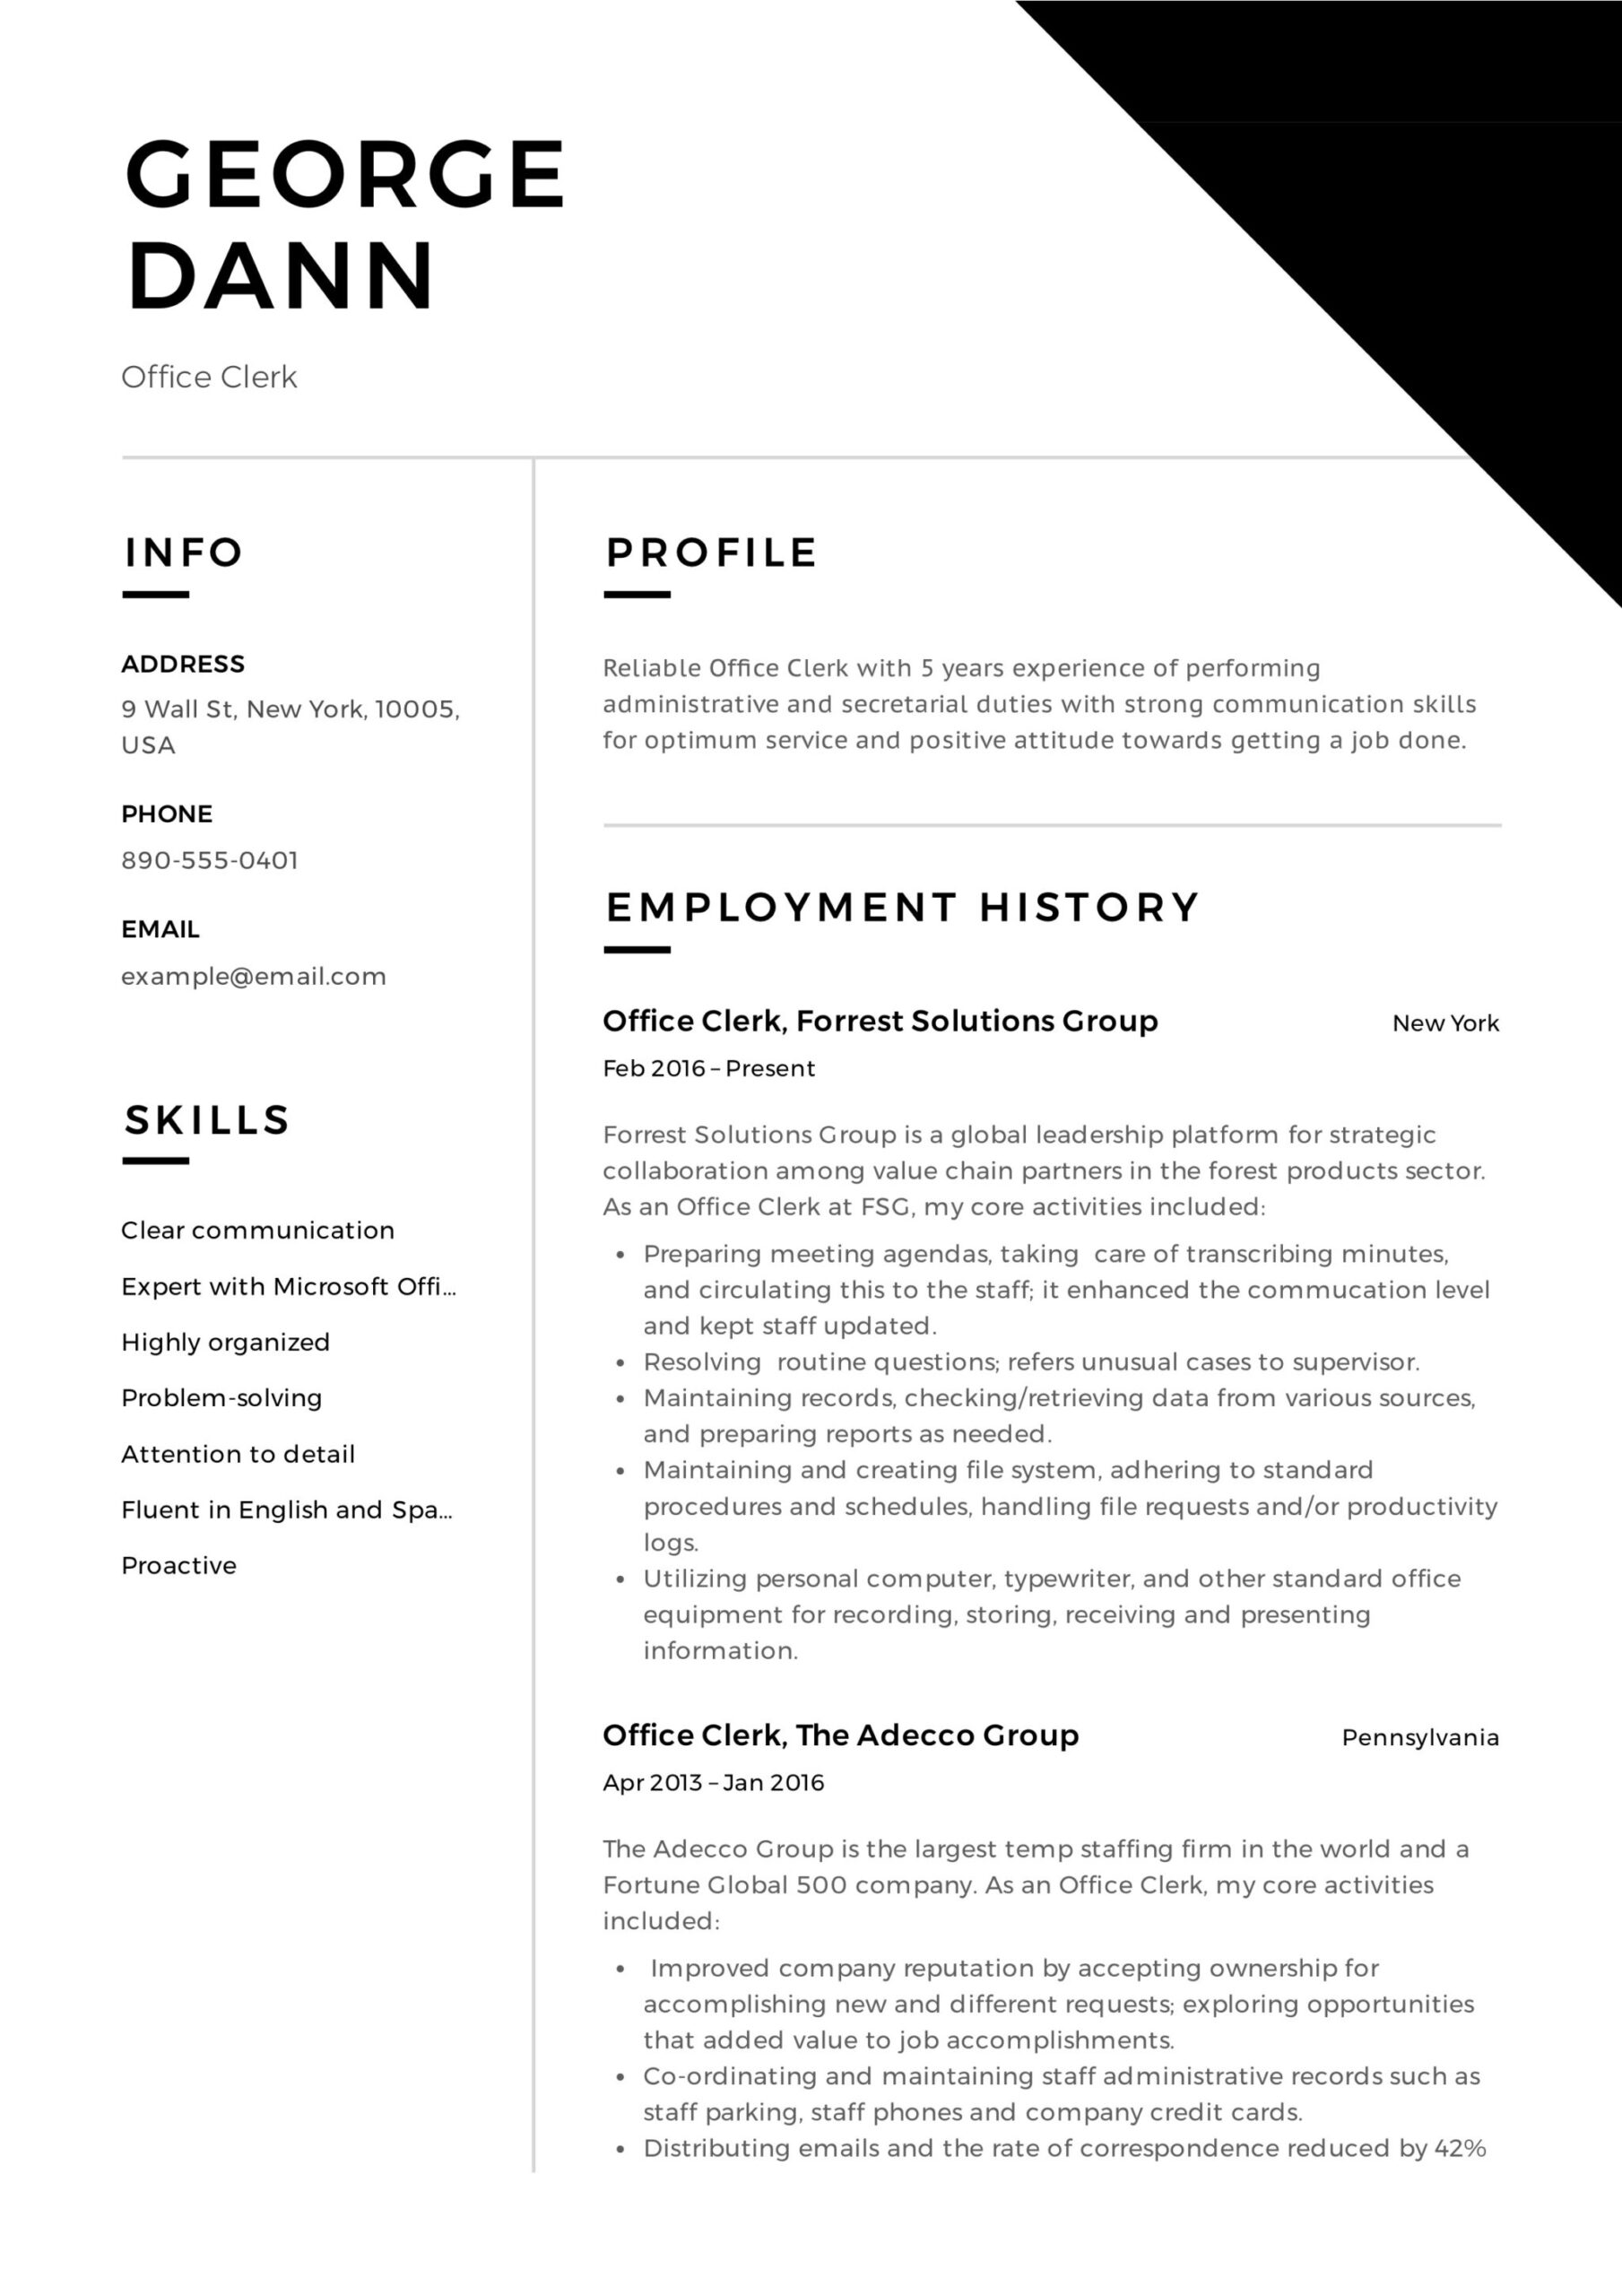 office clerk resume guide samples pdf keywords for clerical objective promotion succinct Resume Keywords For Clerical Resume